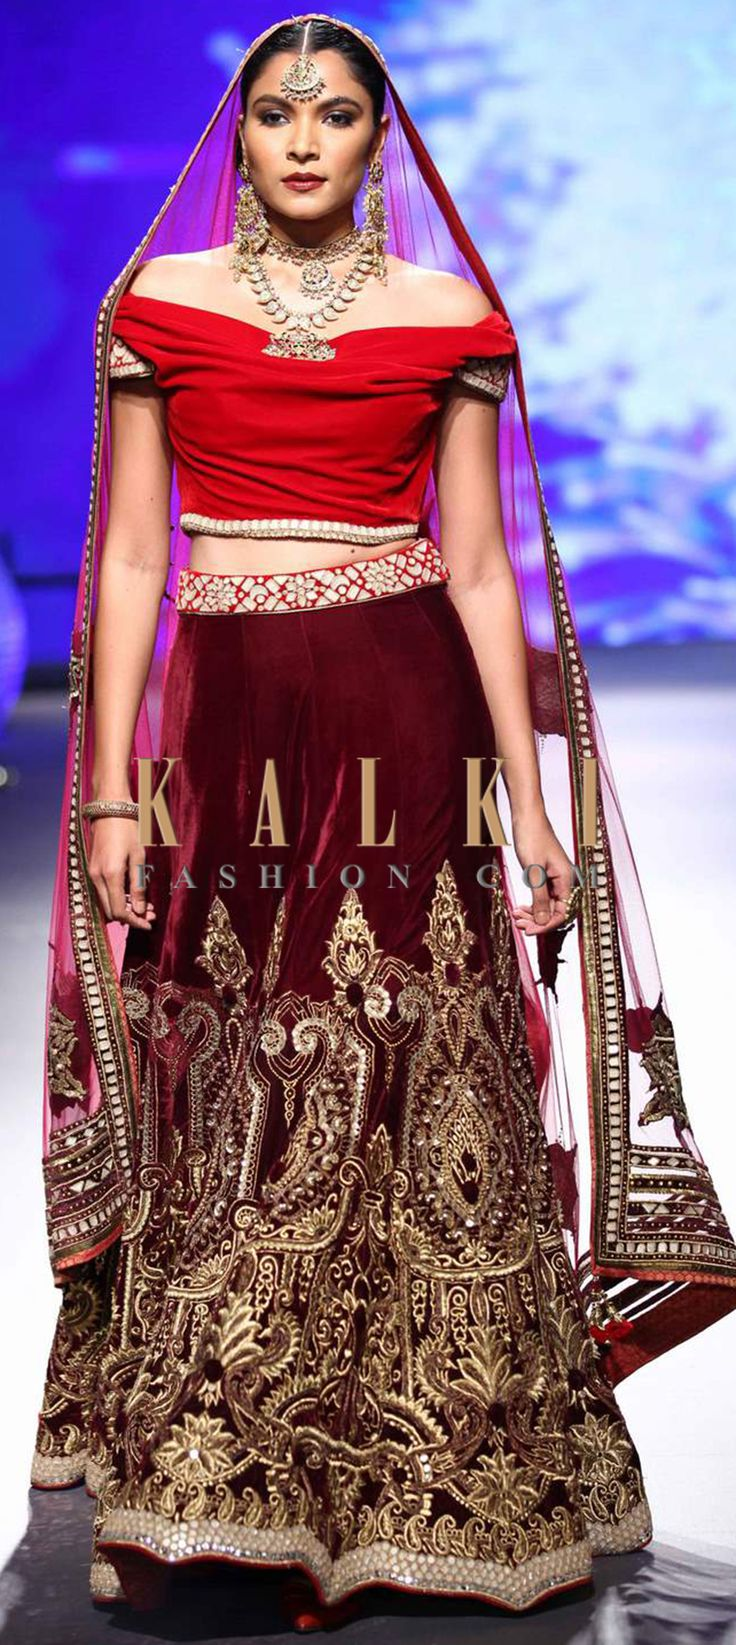 Click on the following link - http://www.kalkifashion.com/designers/tarun-tahiliani.html